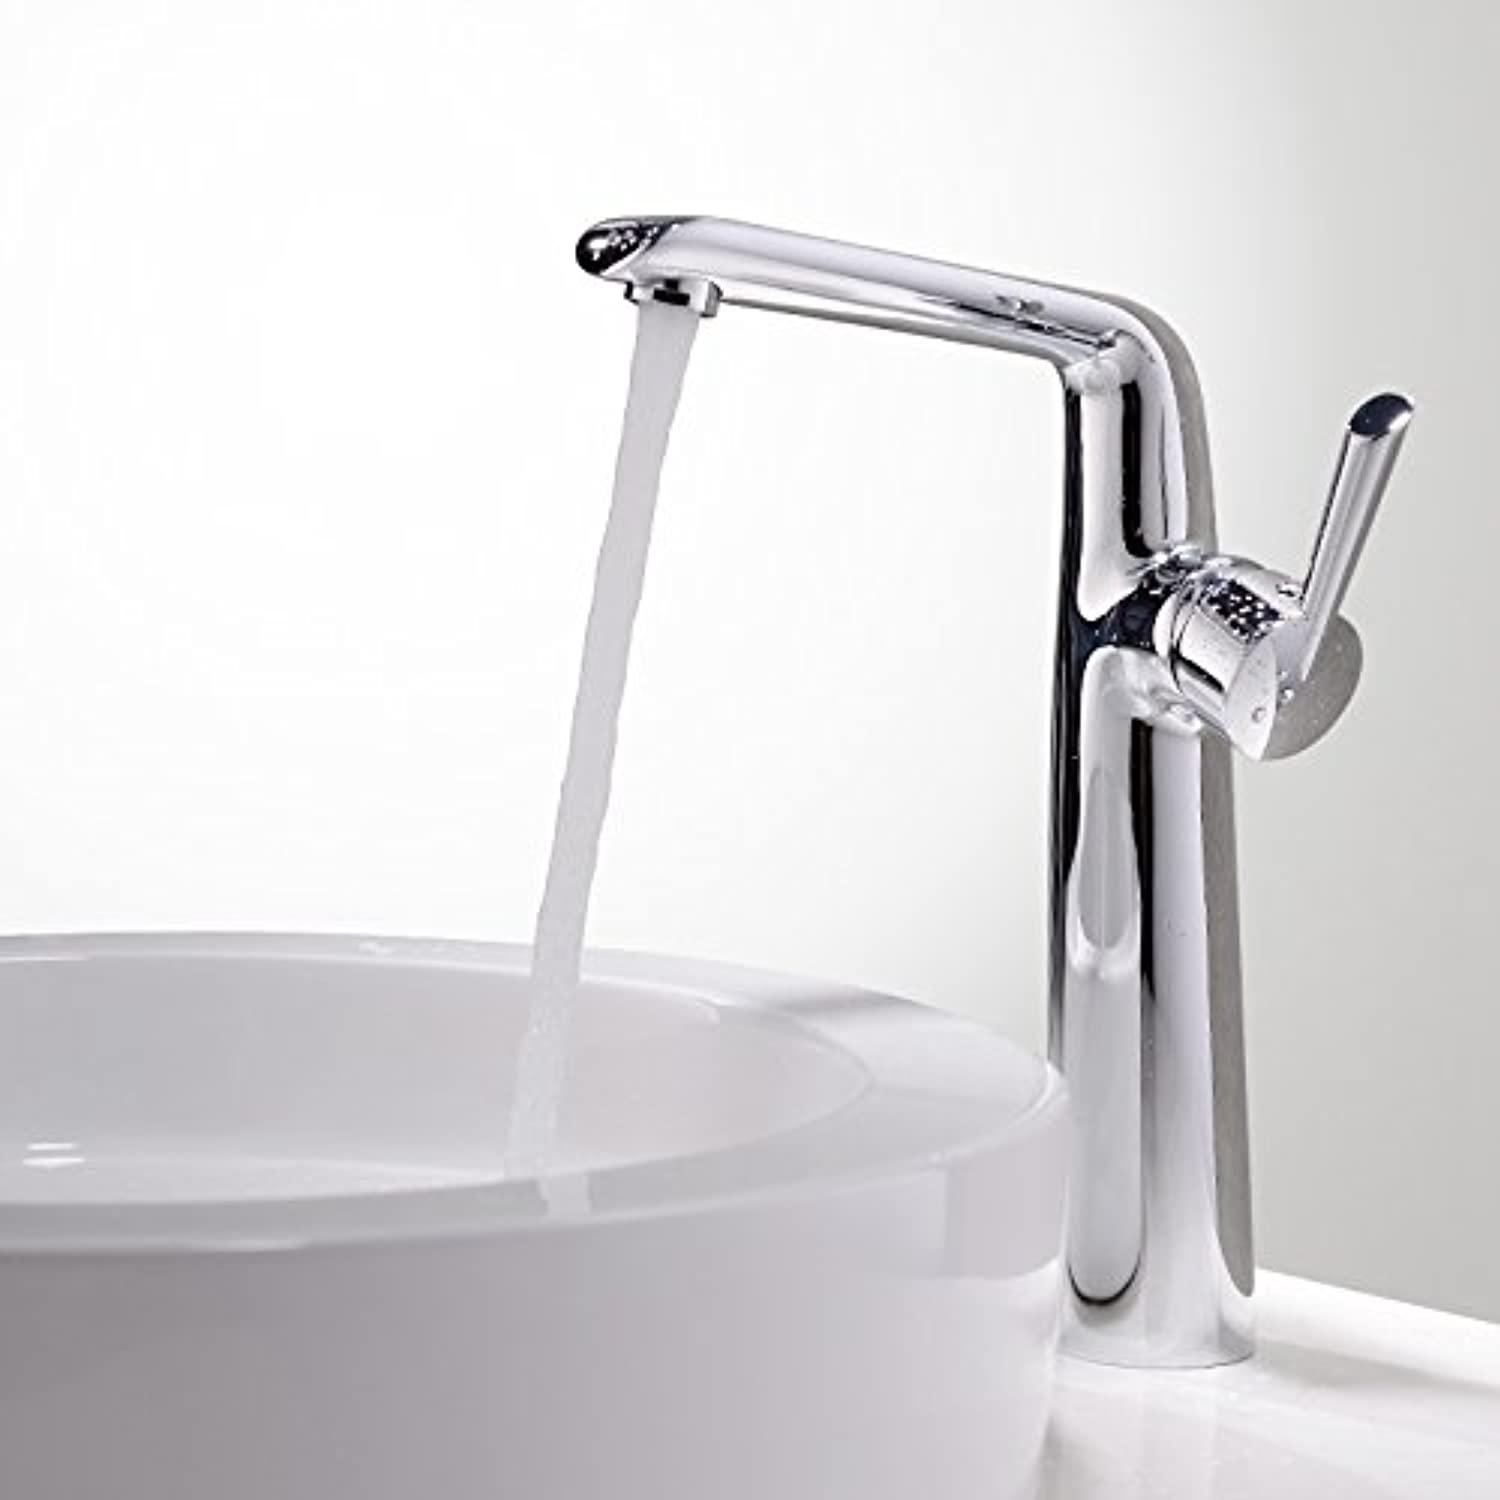 ETERNAL QUALITY Bathroom Sink Basin Tap Brass Mixer Tap Washroom Mixer Faucet White Silver side center console basin basin basin full copper faucet single hole cold and h